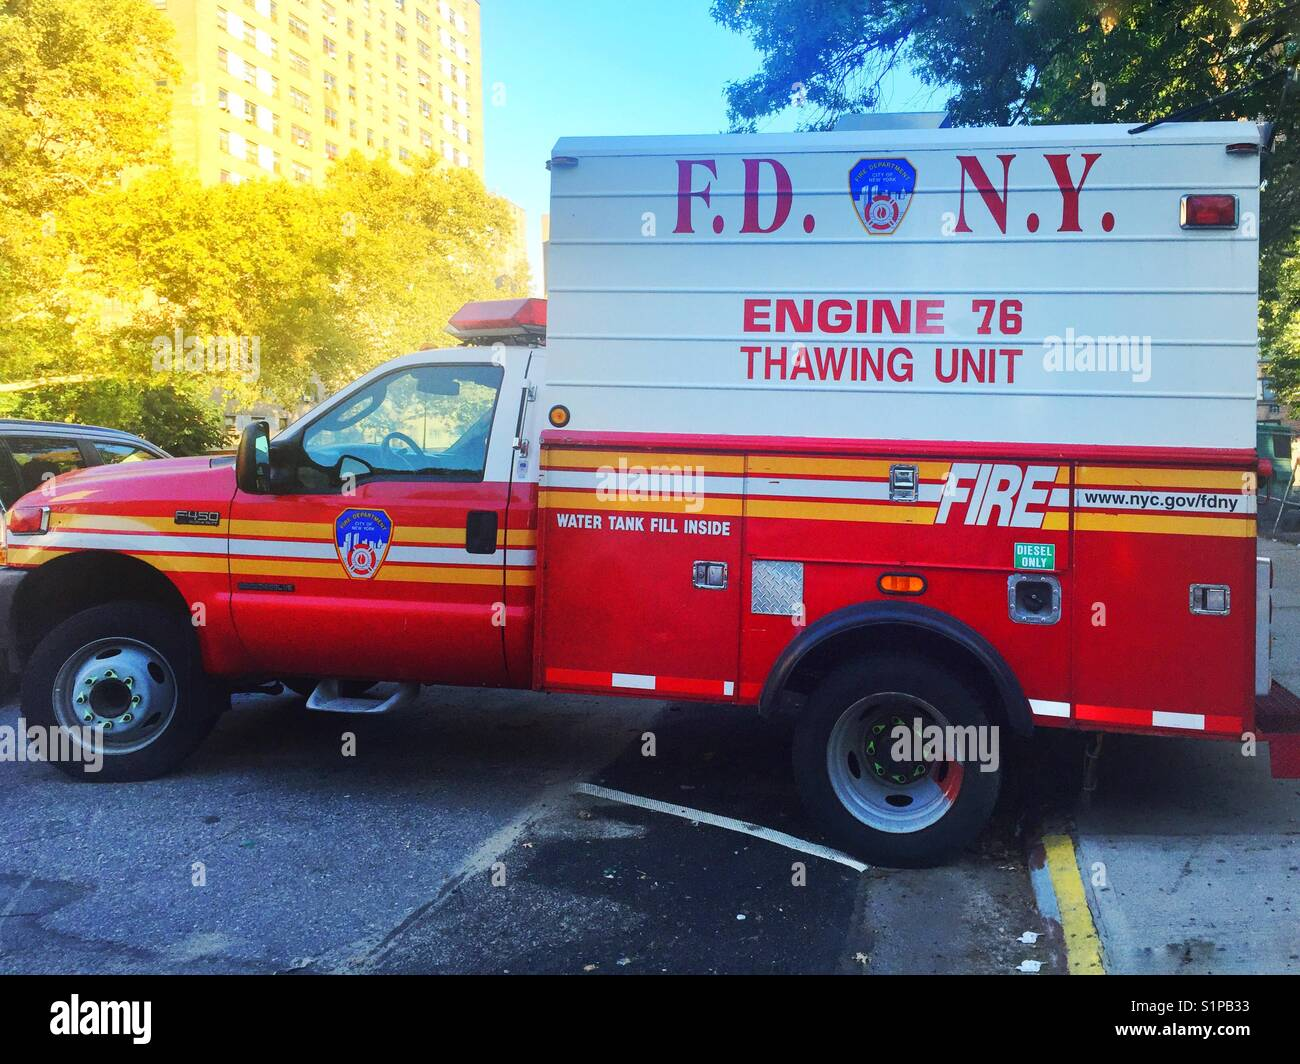 Fire Department, Thawing Unit Special Apparatus, Fire Truck, FDNY, New York City, generates superheated steam at - Stock Image